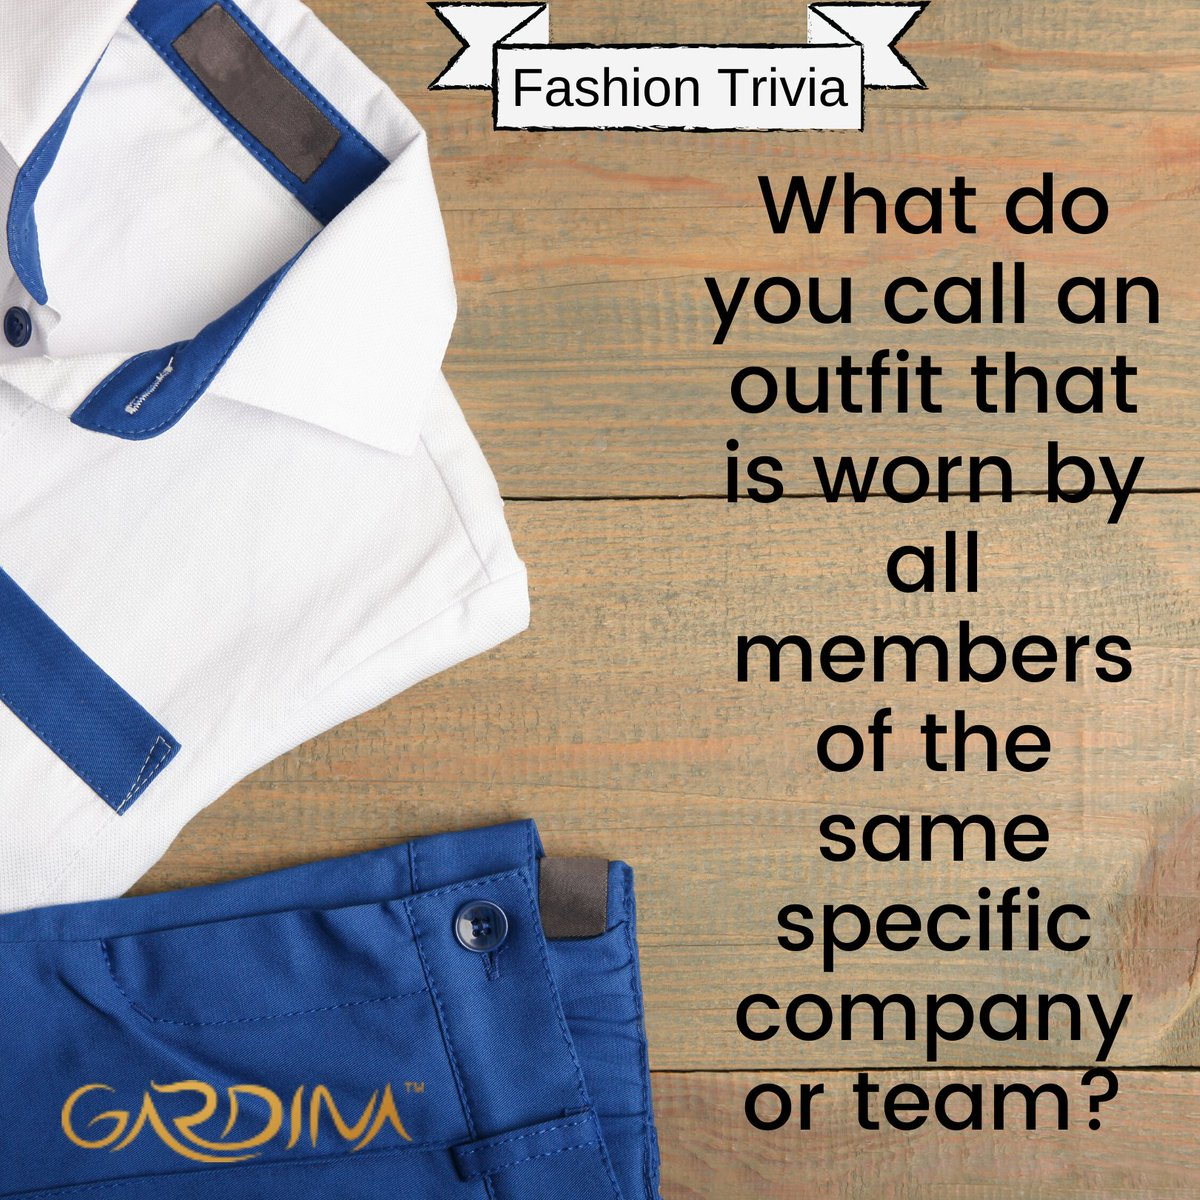 """What do you call an outfit that is worn by all members of the same specific company or team?"" Post your answer in the comment section.  #fashiontrivia #fashionlover #fashionstyle #luxury #fashionista #fashiondaily #fashion #gardina #luxuryfashion #feelgoodfashion #instafashion https://t.co/DZE6Mjz6Sa"